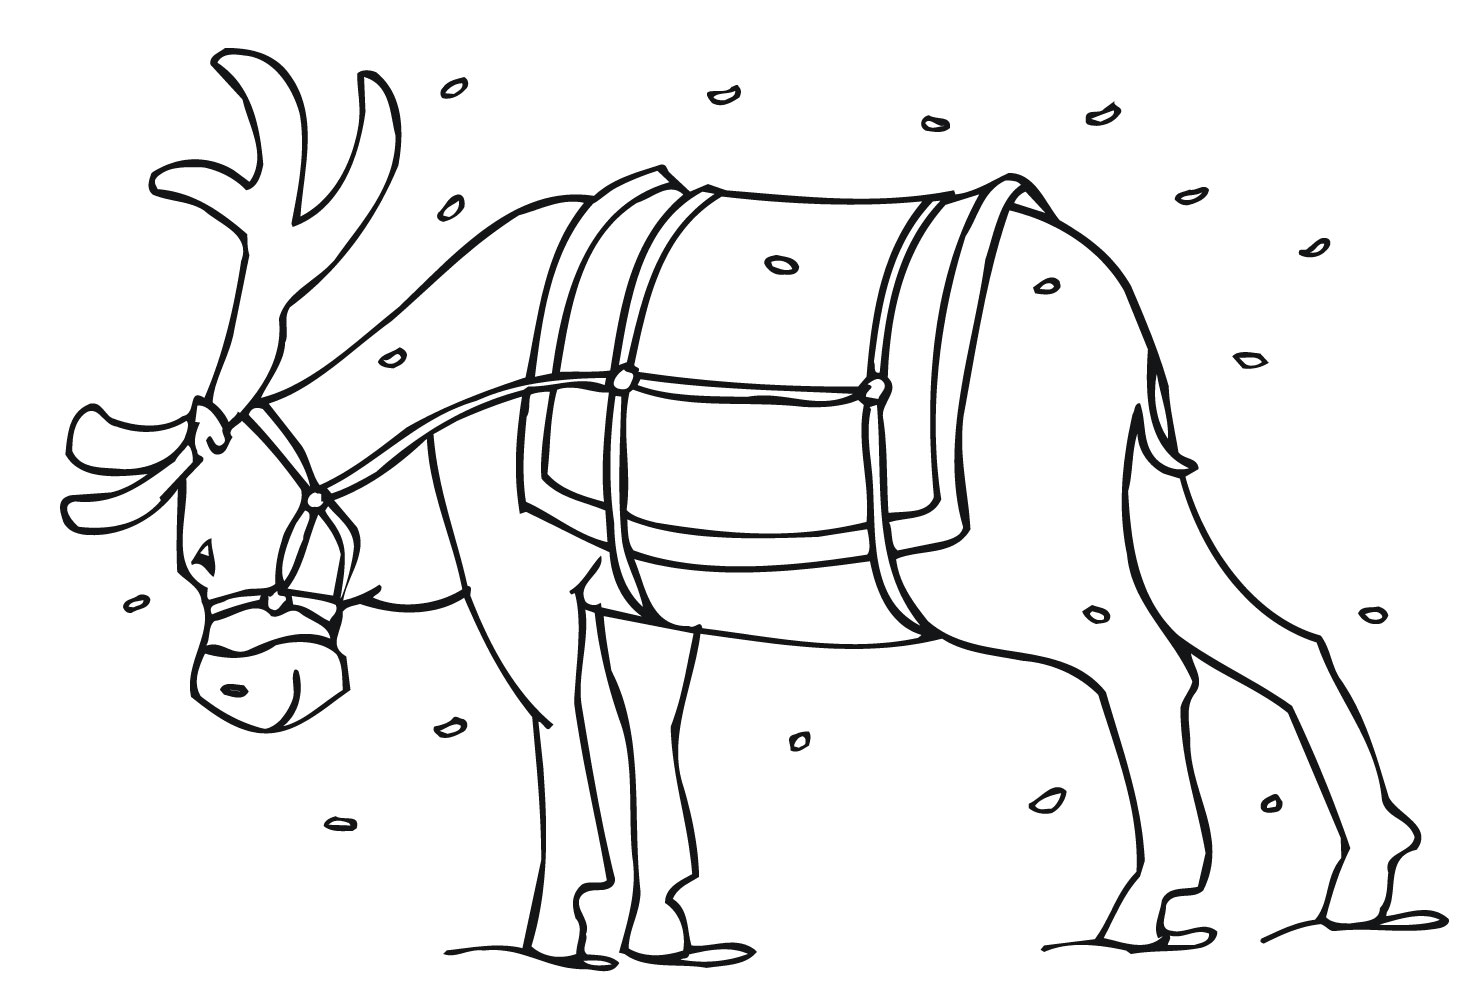 Christmas Reindeer Coloring Sheets With Free Printable Pages For Kids